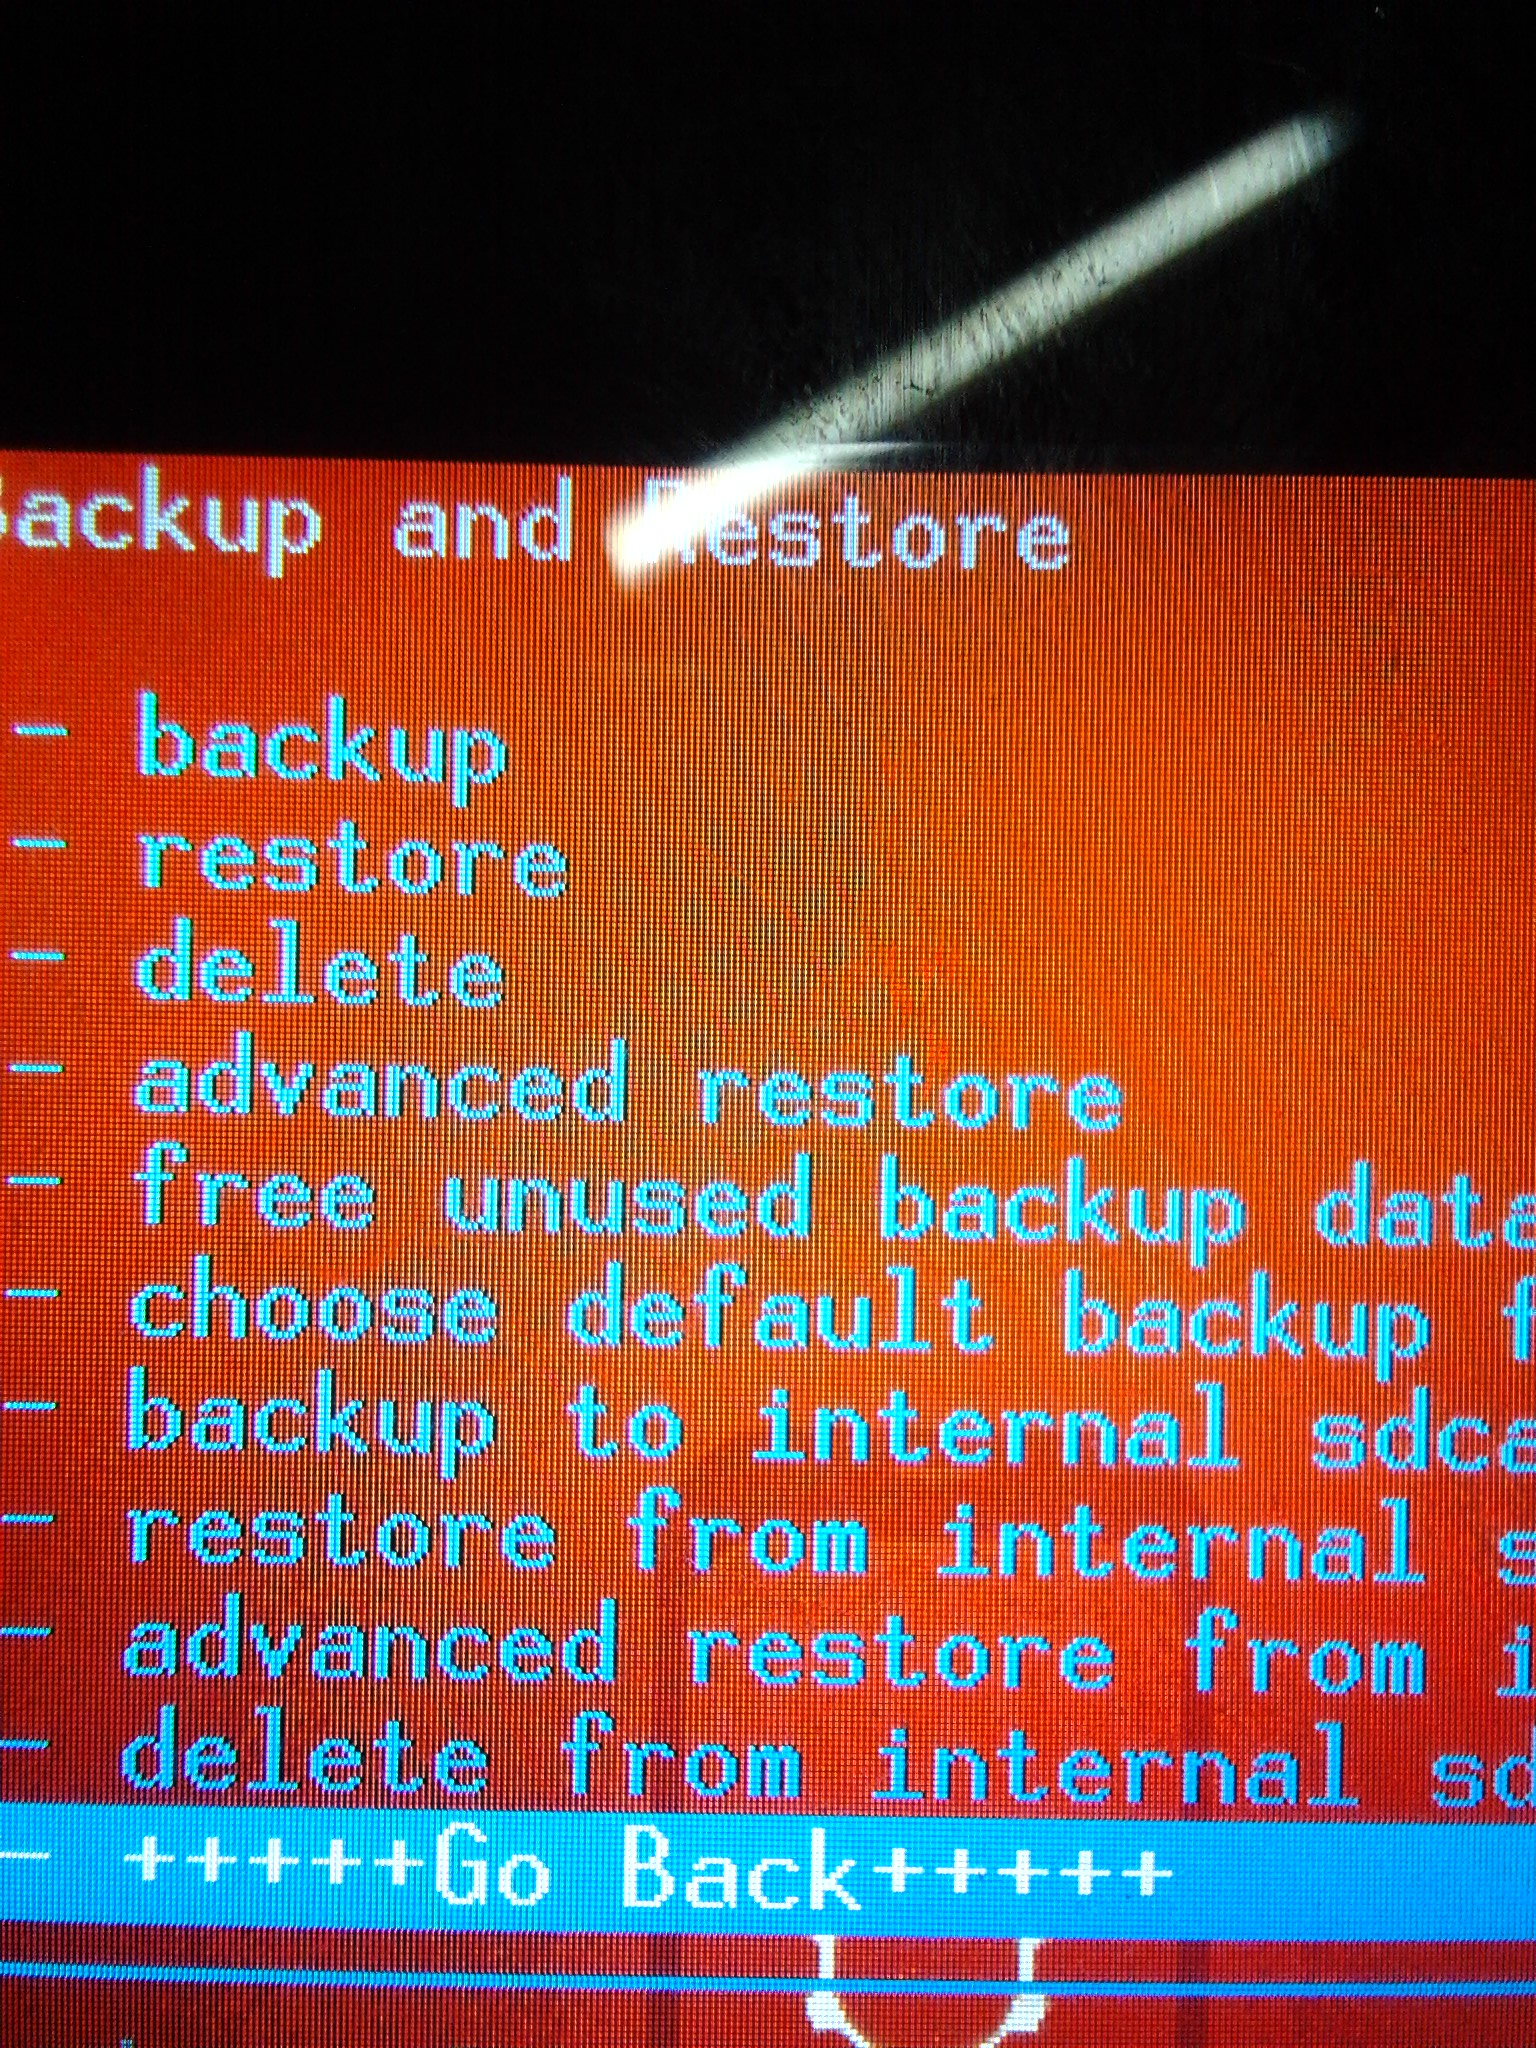 Backup and Restore menu